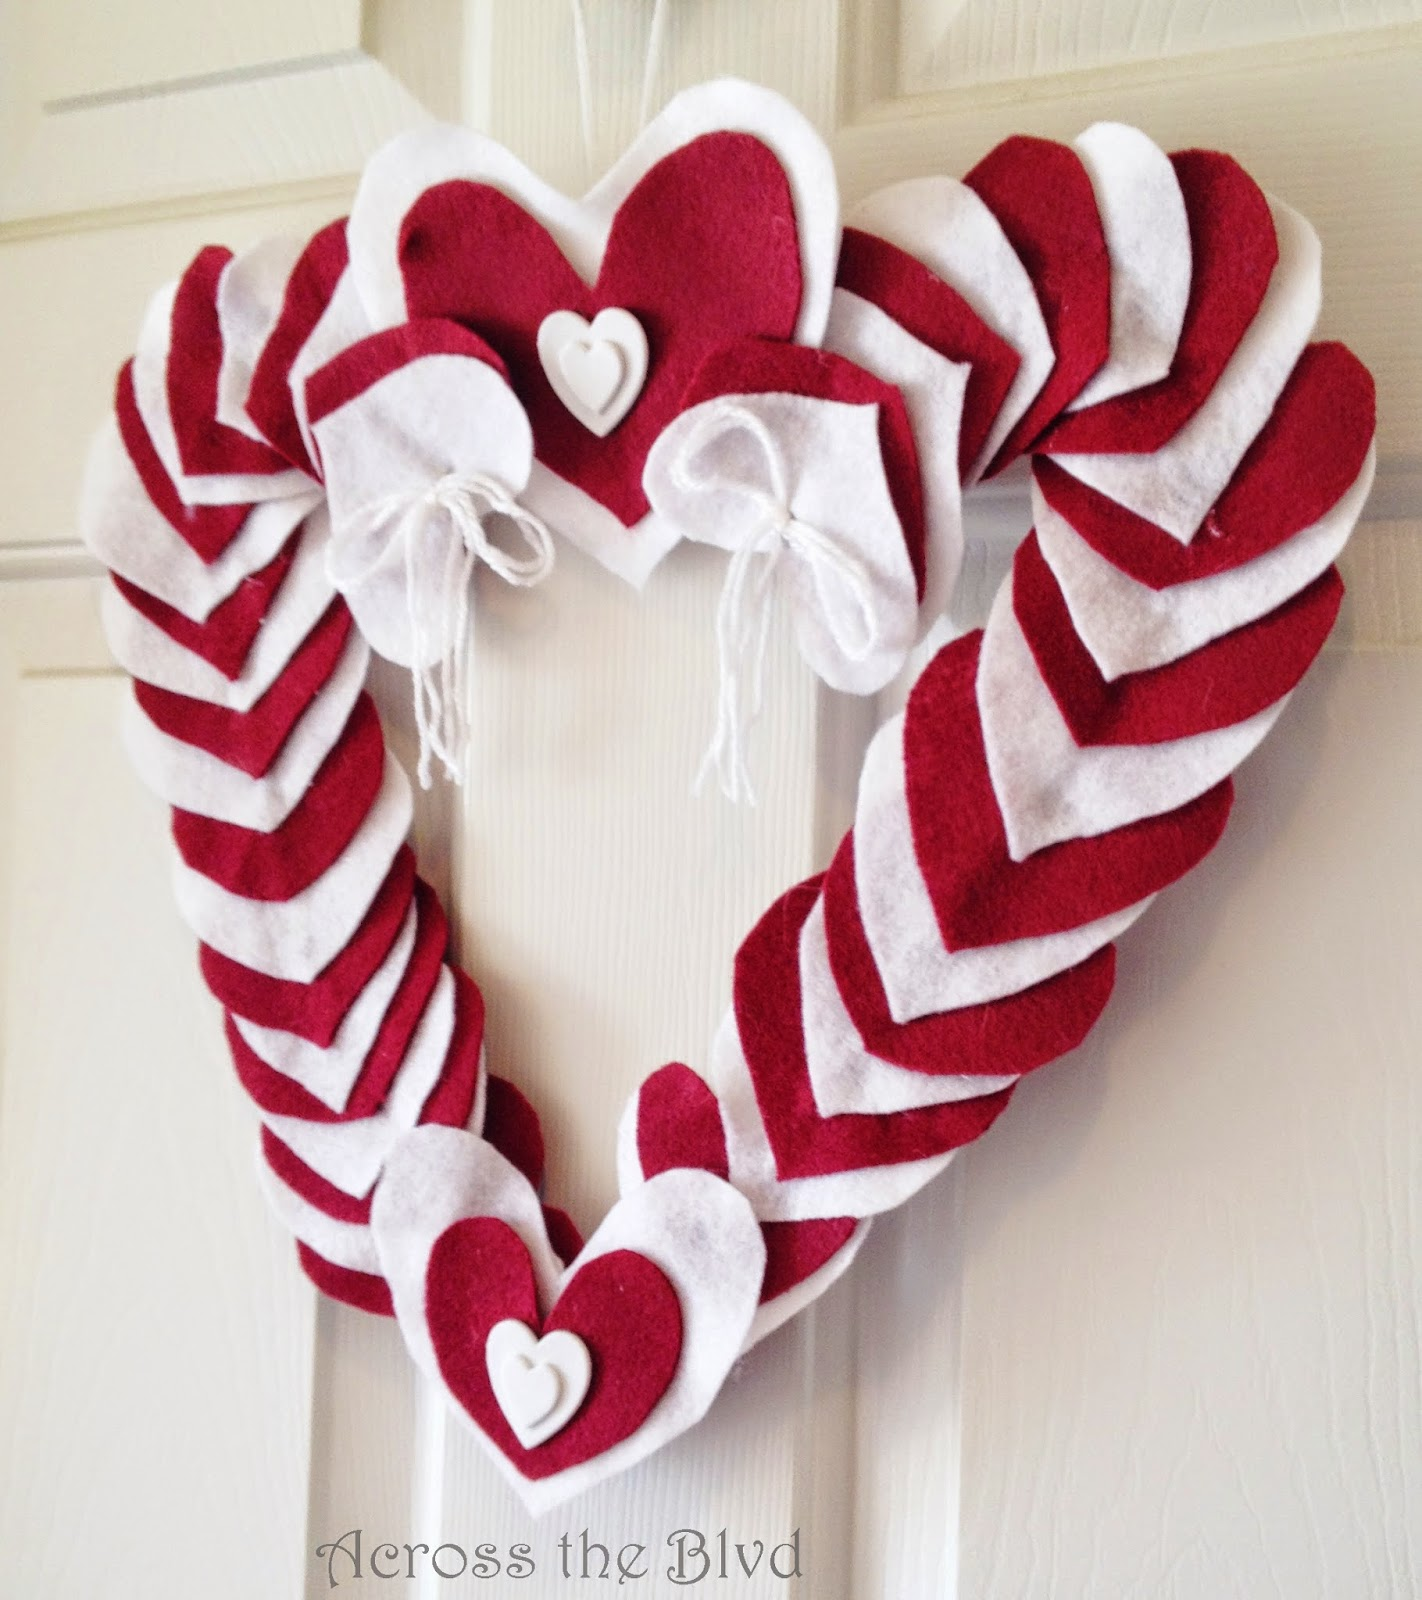 Felt Valentine's Heart Wreath